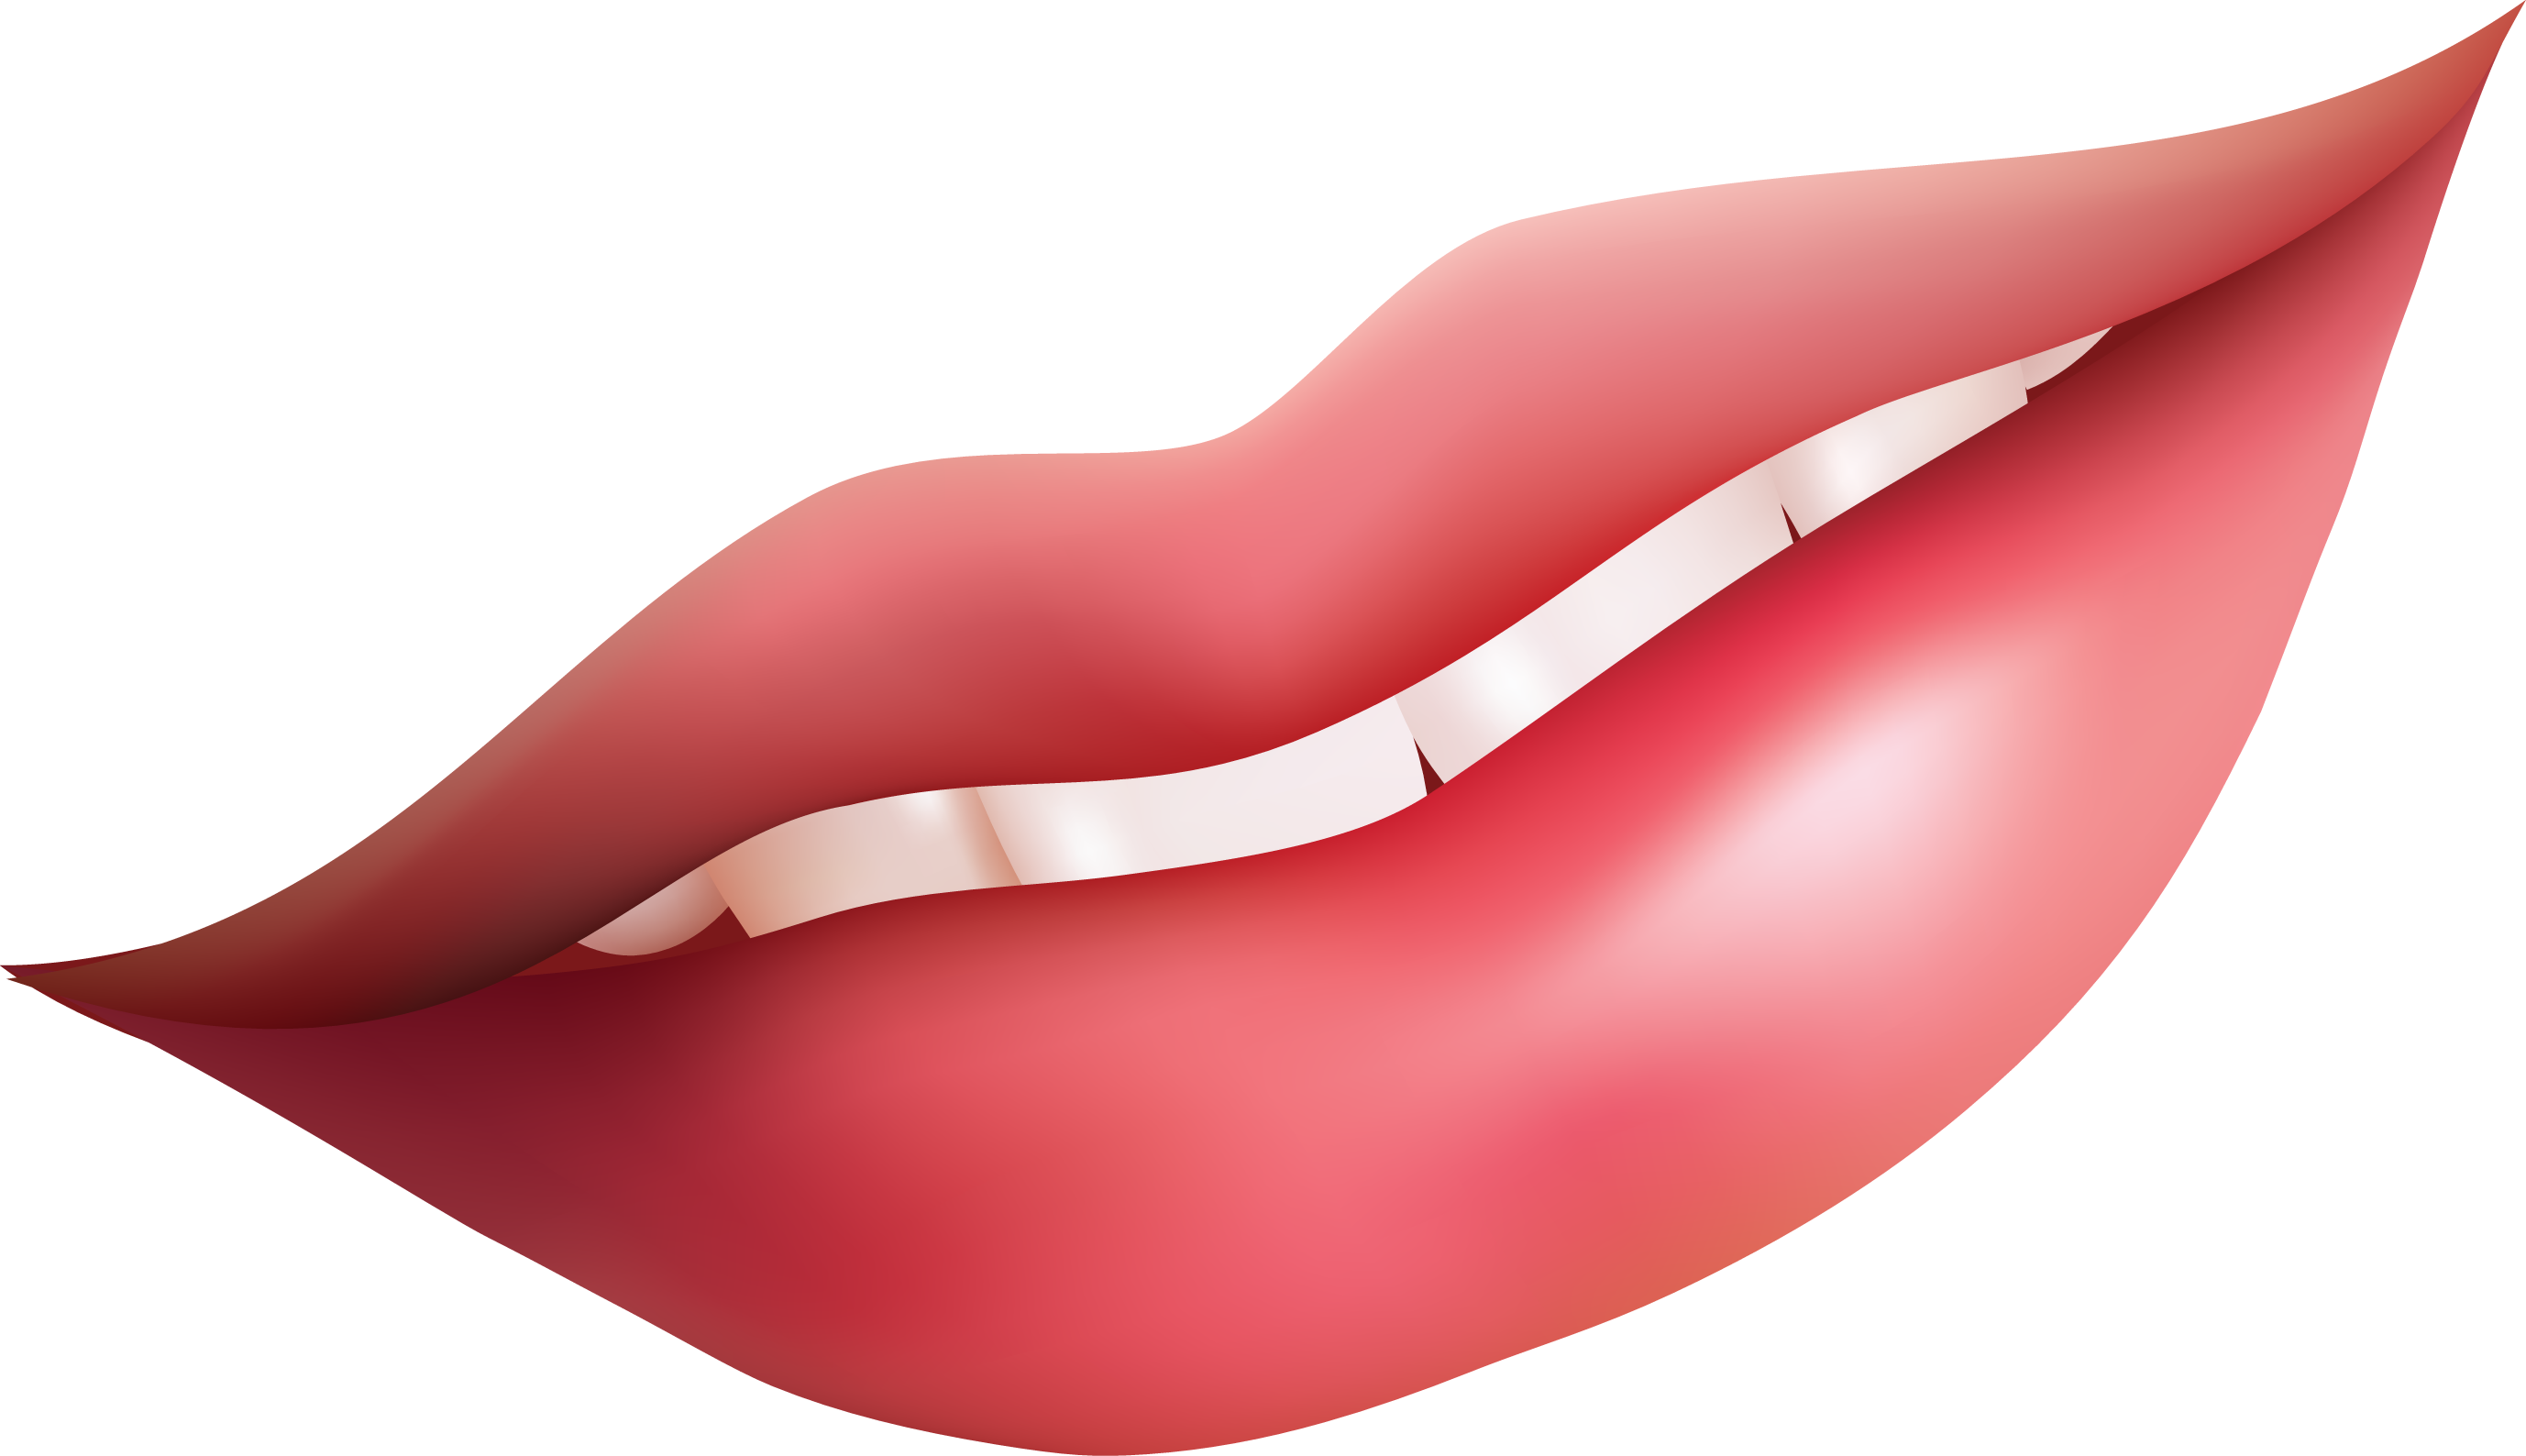 Smile Mouth High quality Png